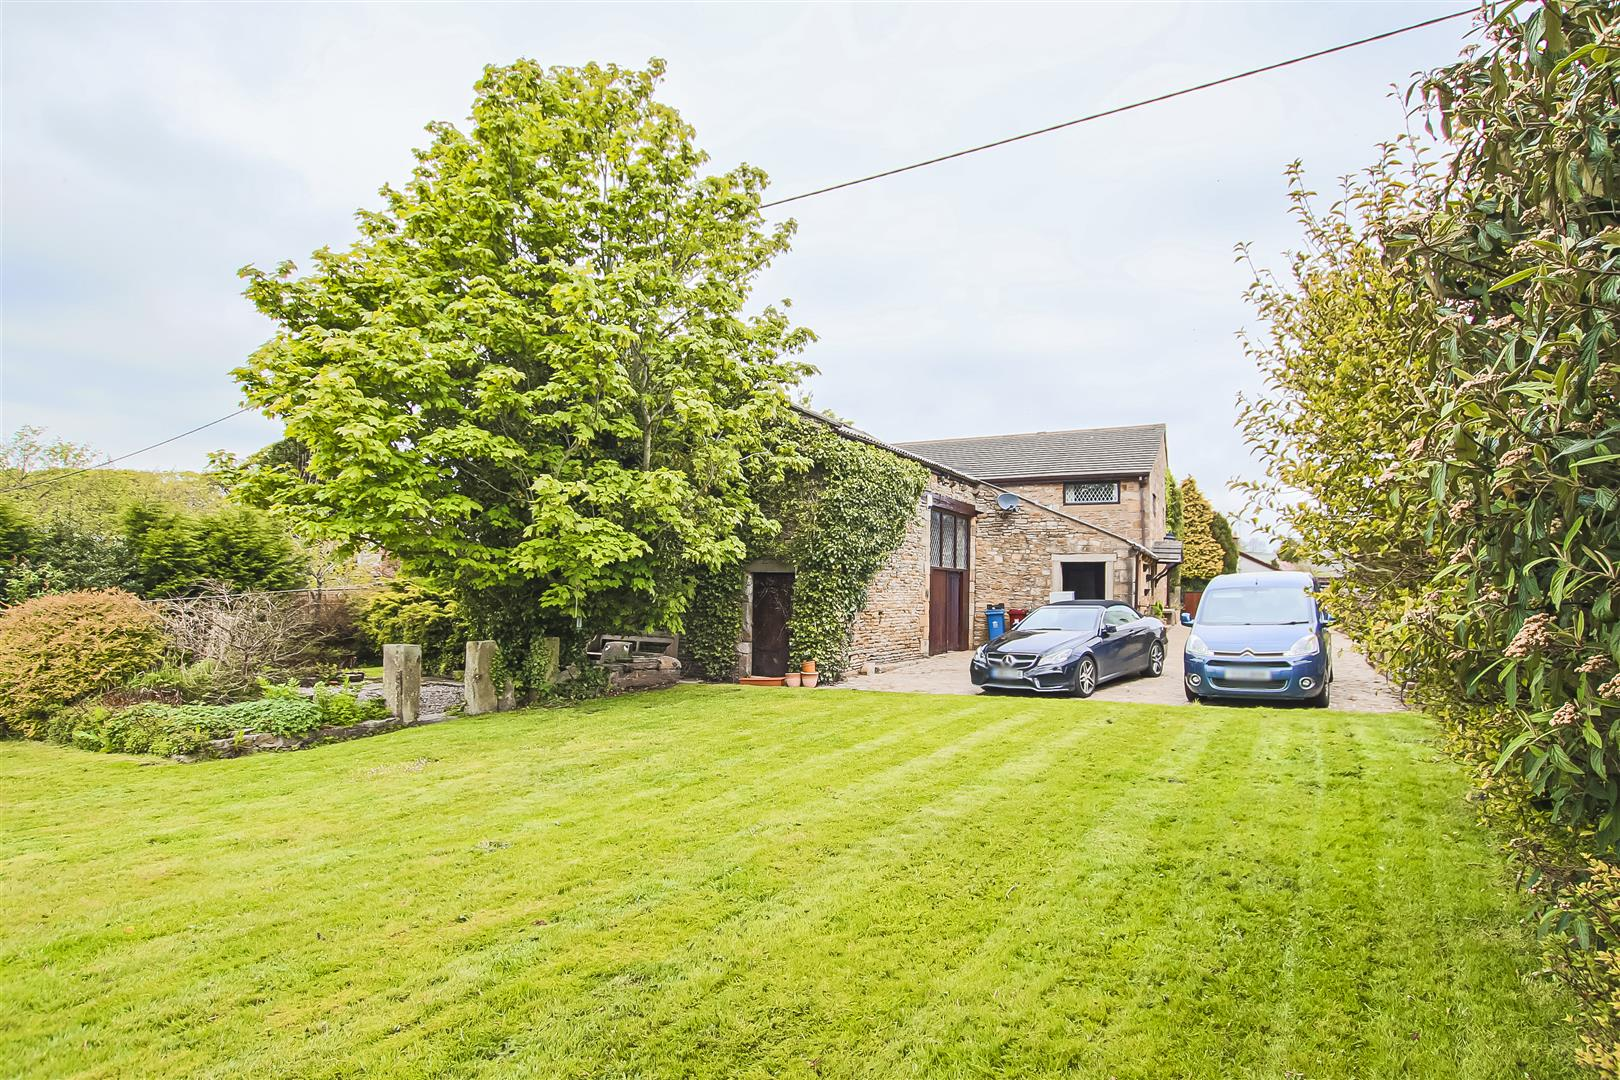 5 Bedroom Barn Conversion For Sale - Image 15